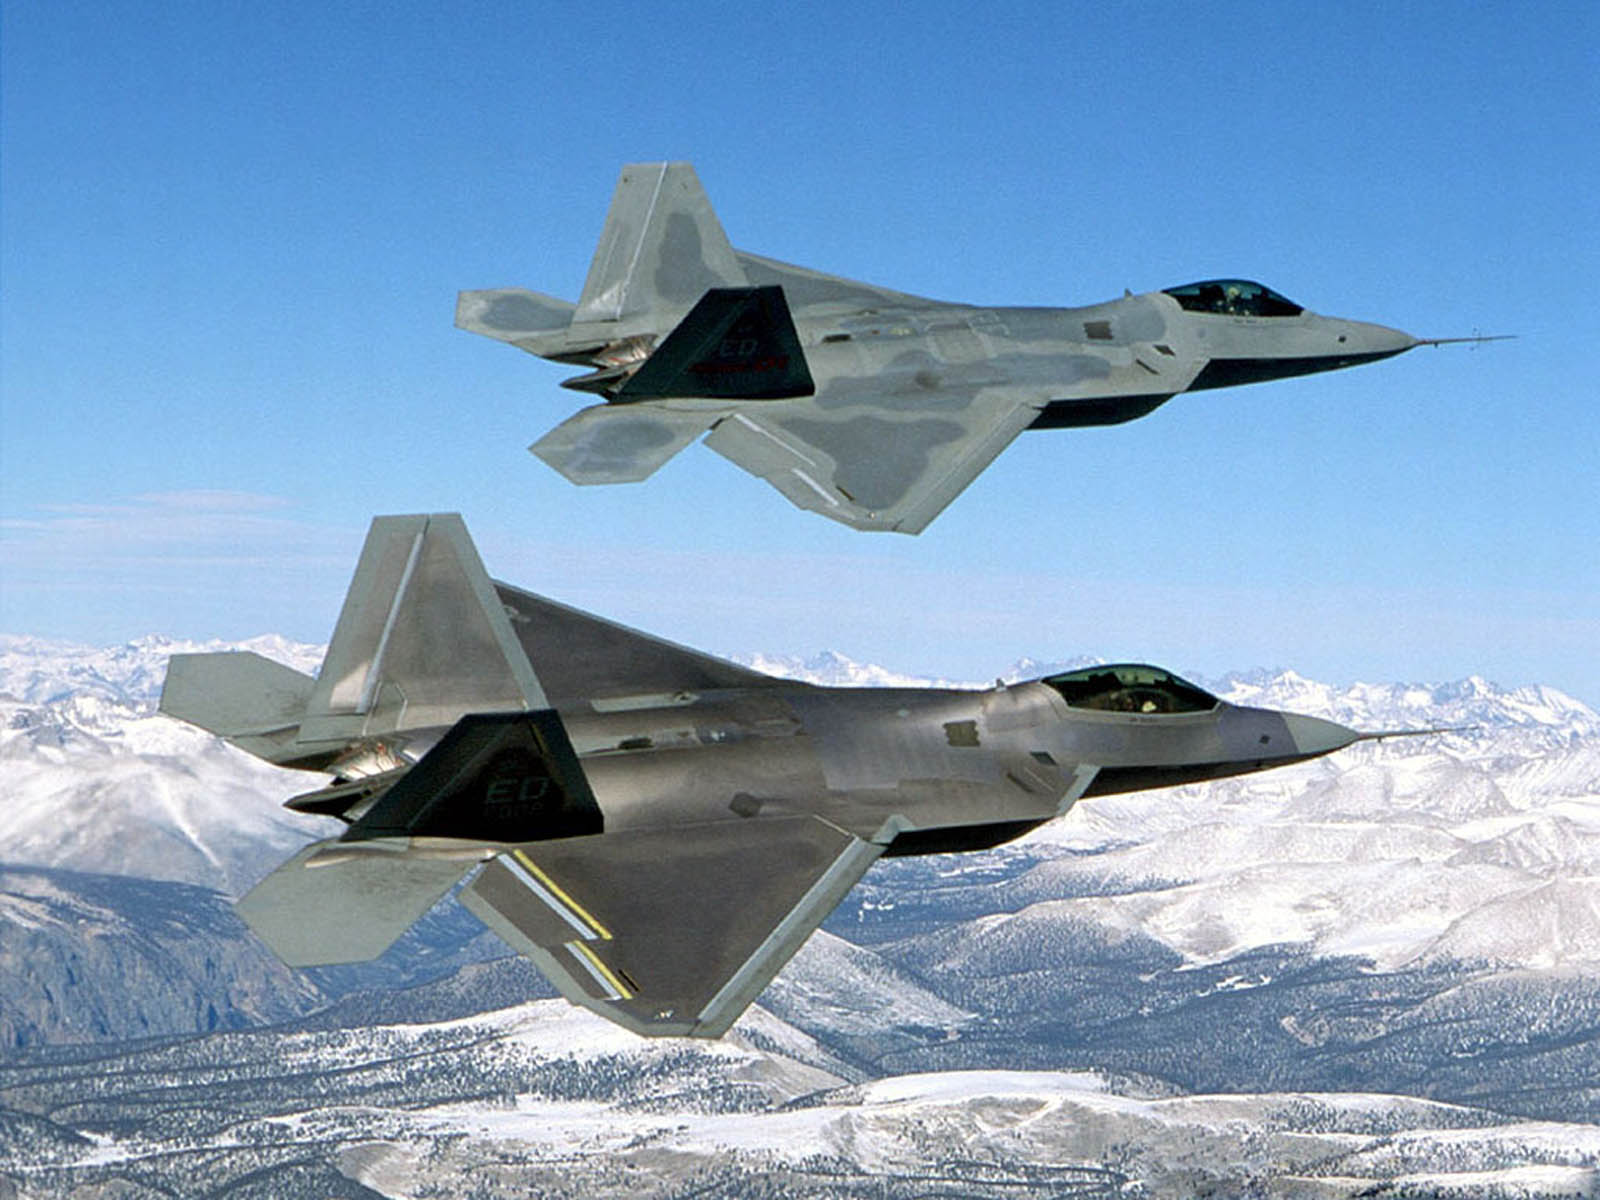 wallpapers f 22 raptor military jet fighter desktop wallpapers f 22 1600x1200